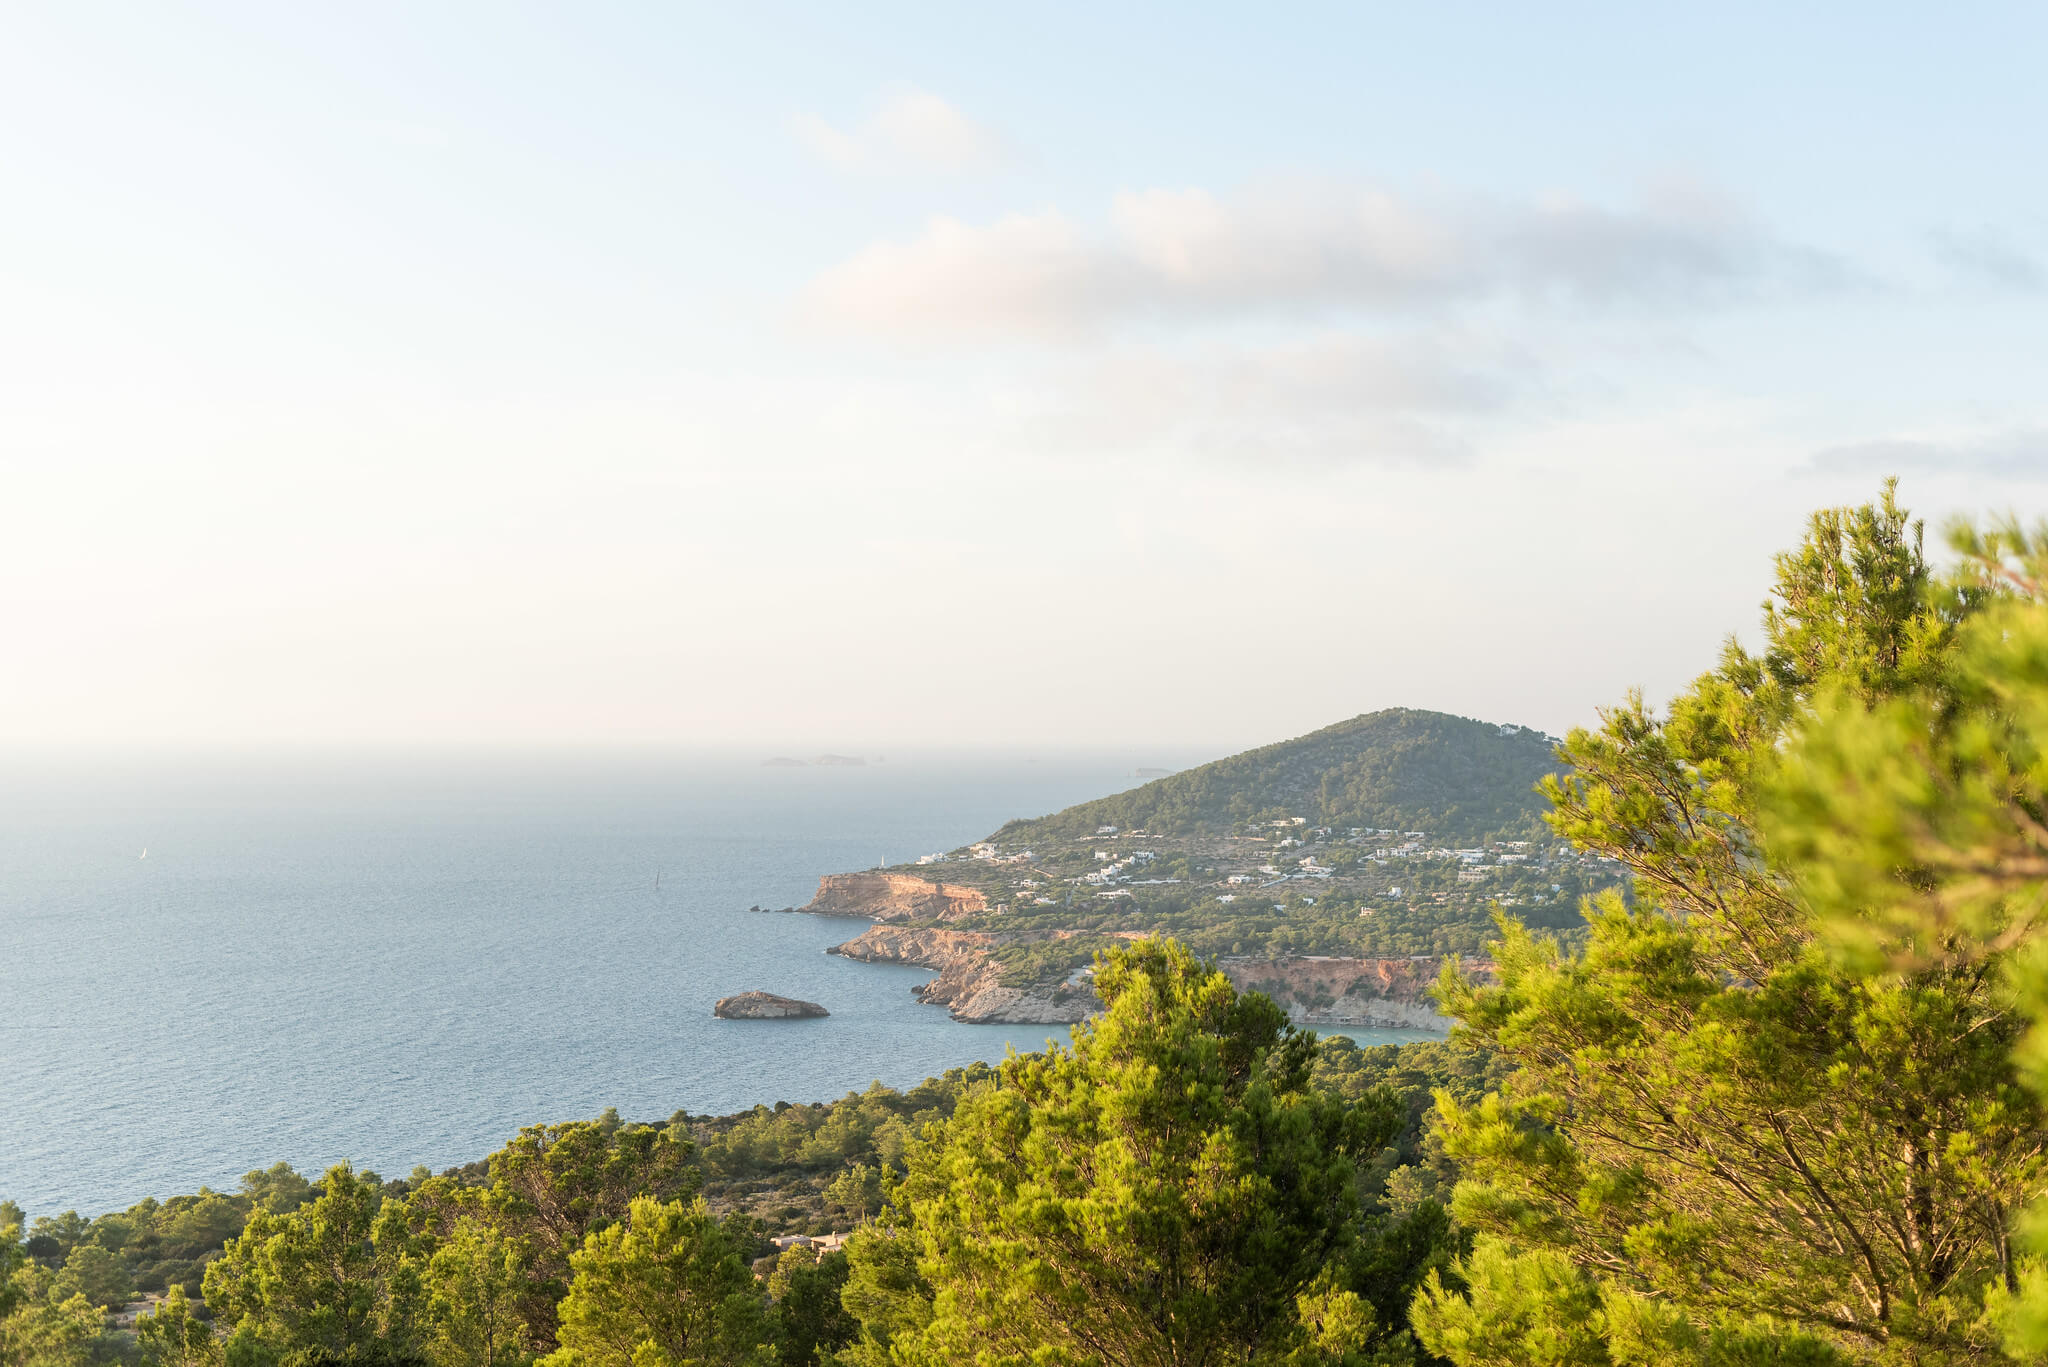 https://www.white-ibiza.com/wp-content/uploads/2020/03/ibiza-guide-areas-south-west-2020-11.jpg